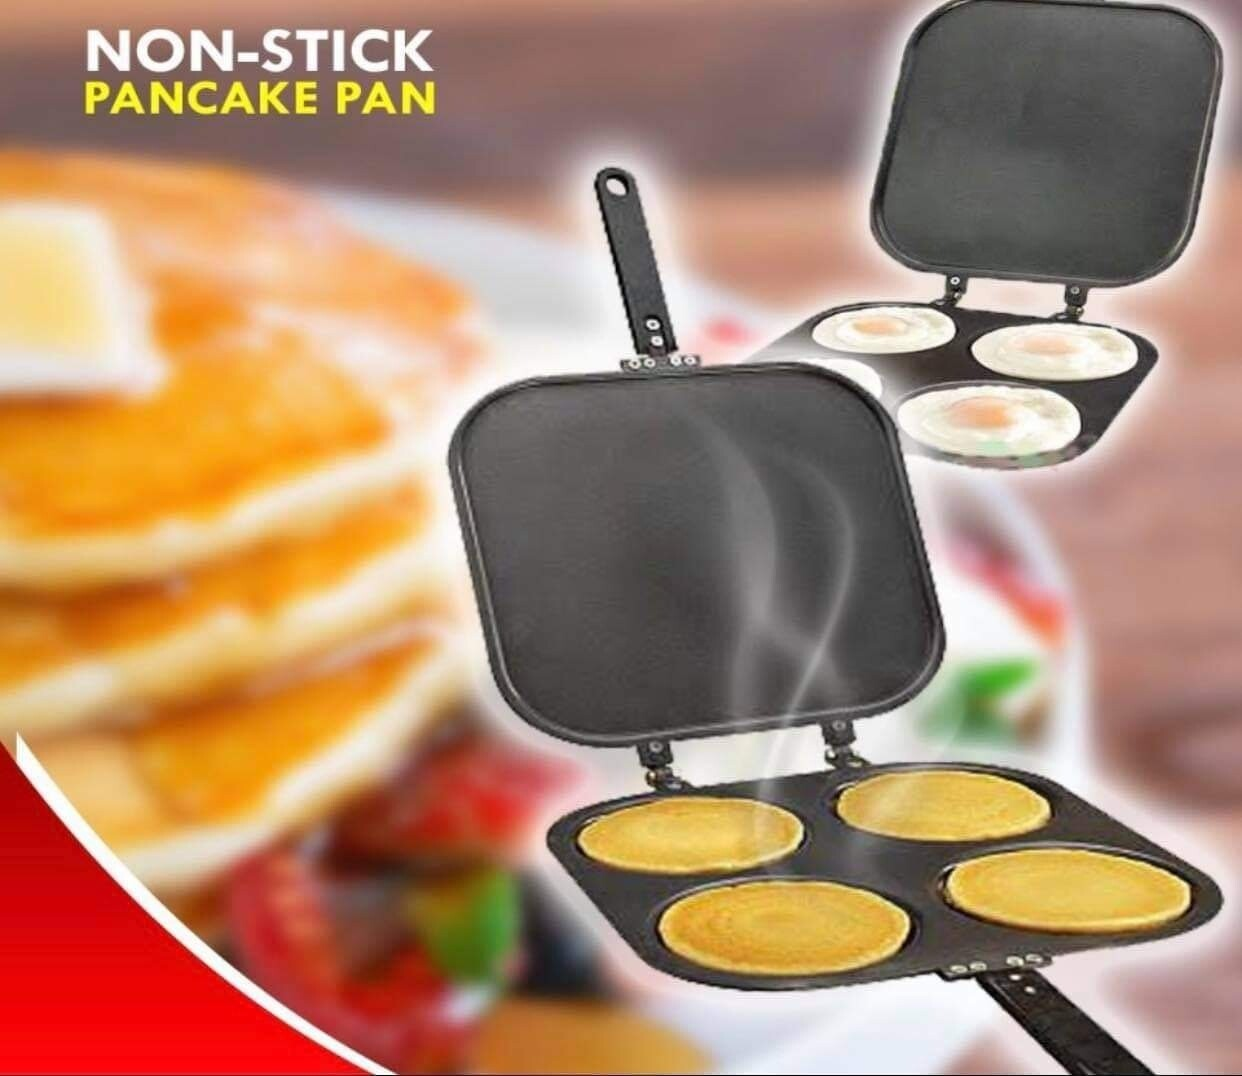 Pancake Pan (Four-hole Double-sided, Non-stick)